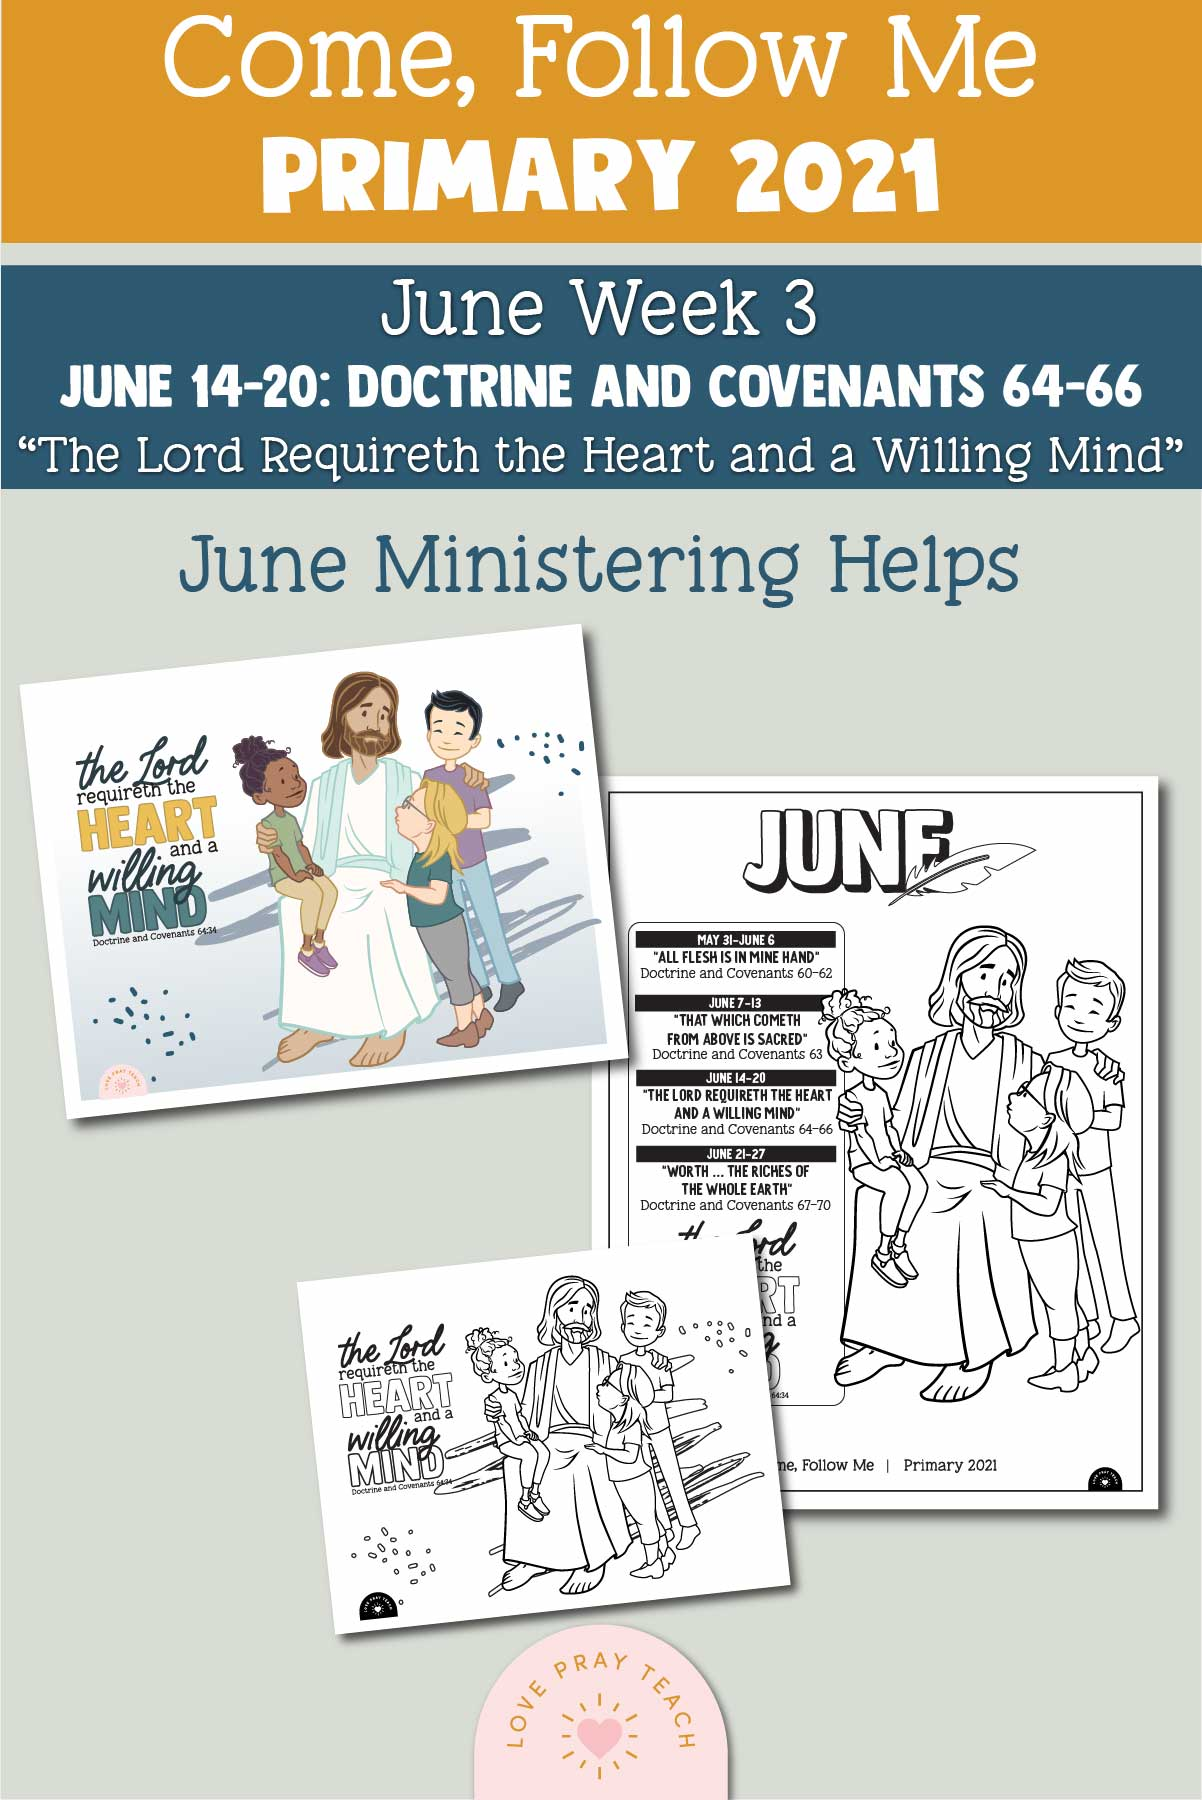 """Come, Follow Me for Primary 2021 June Week 3 Doctrine and Covenants 64–66 """"The Lord Requireth the Heart and a Willing Mind"""" Printable Lesson Materials"""